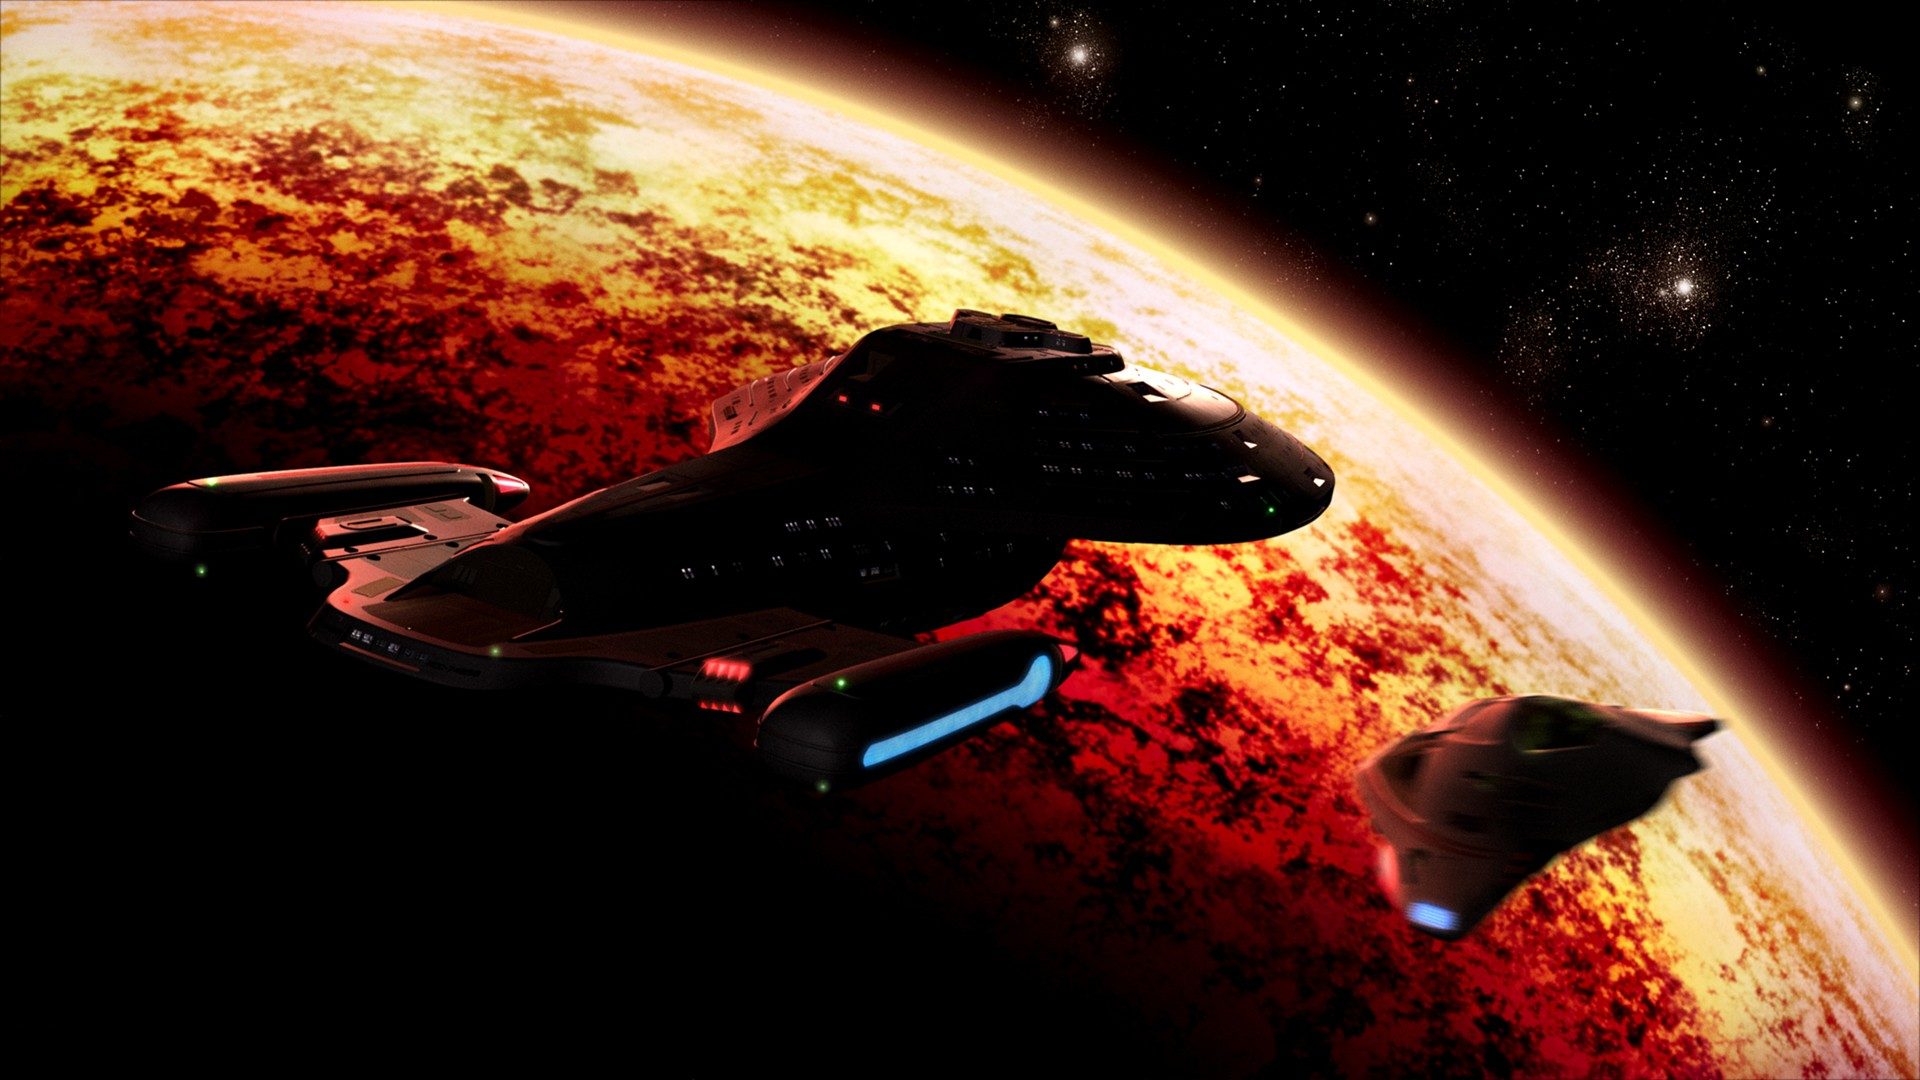 The Uss Voyager In Orbit Around A Burning Planet While The Delta